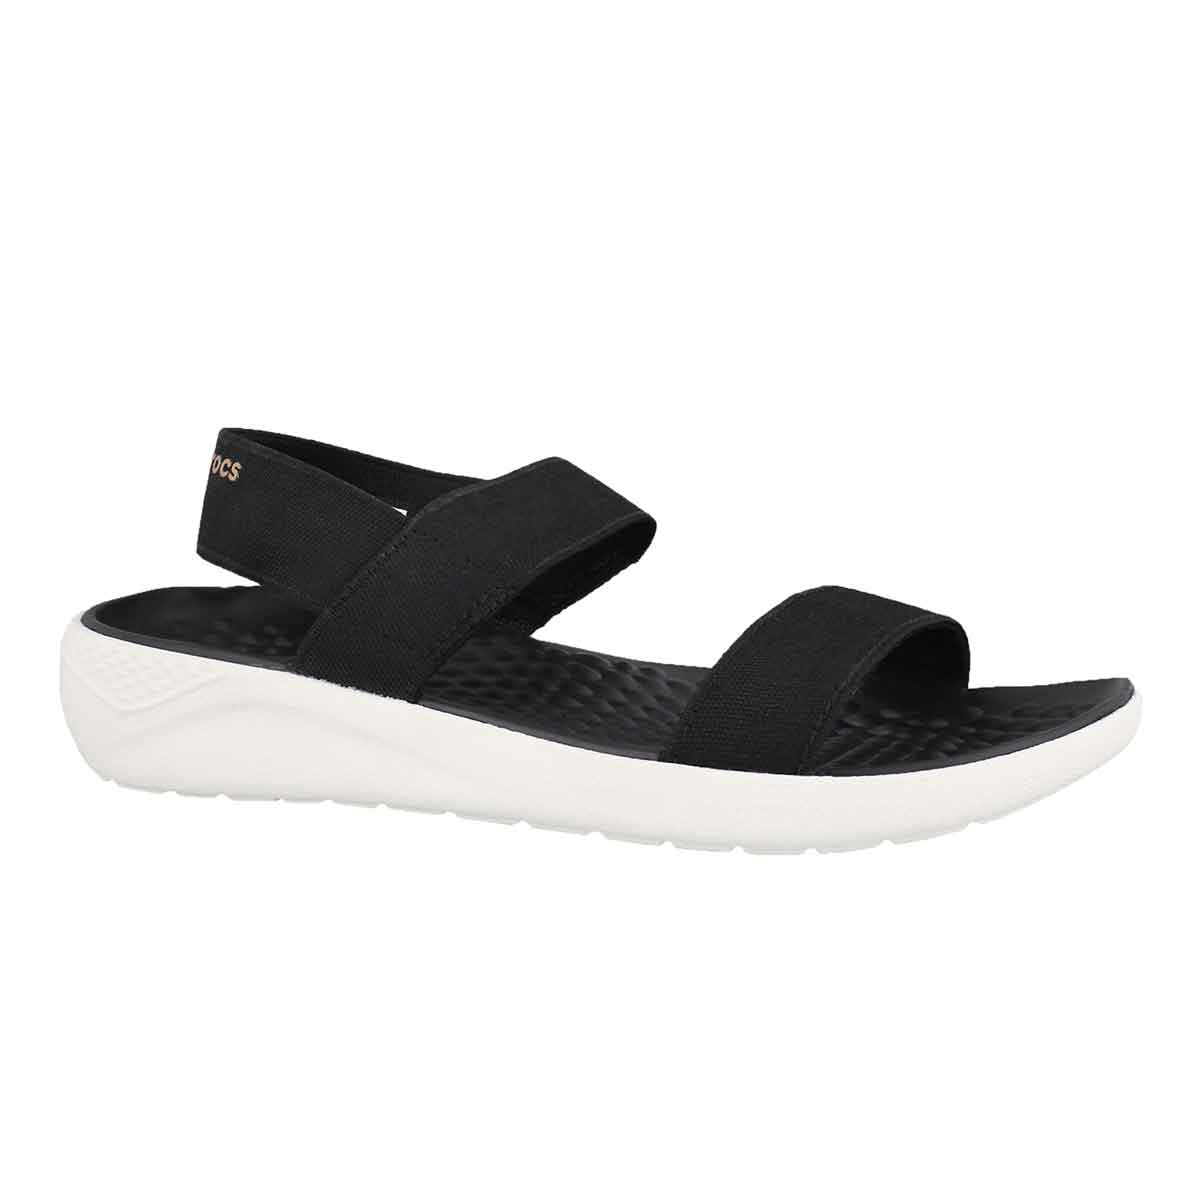 Women's LITERIDE black/white casual sandals